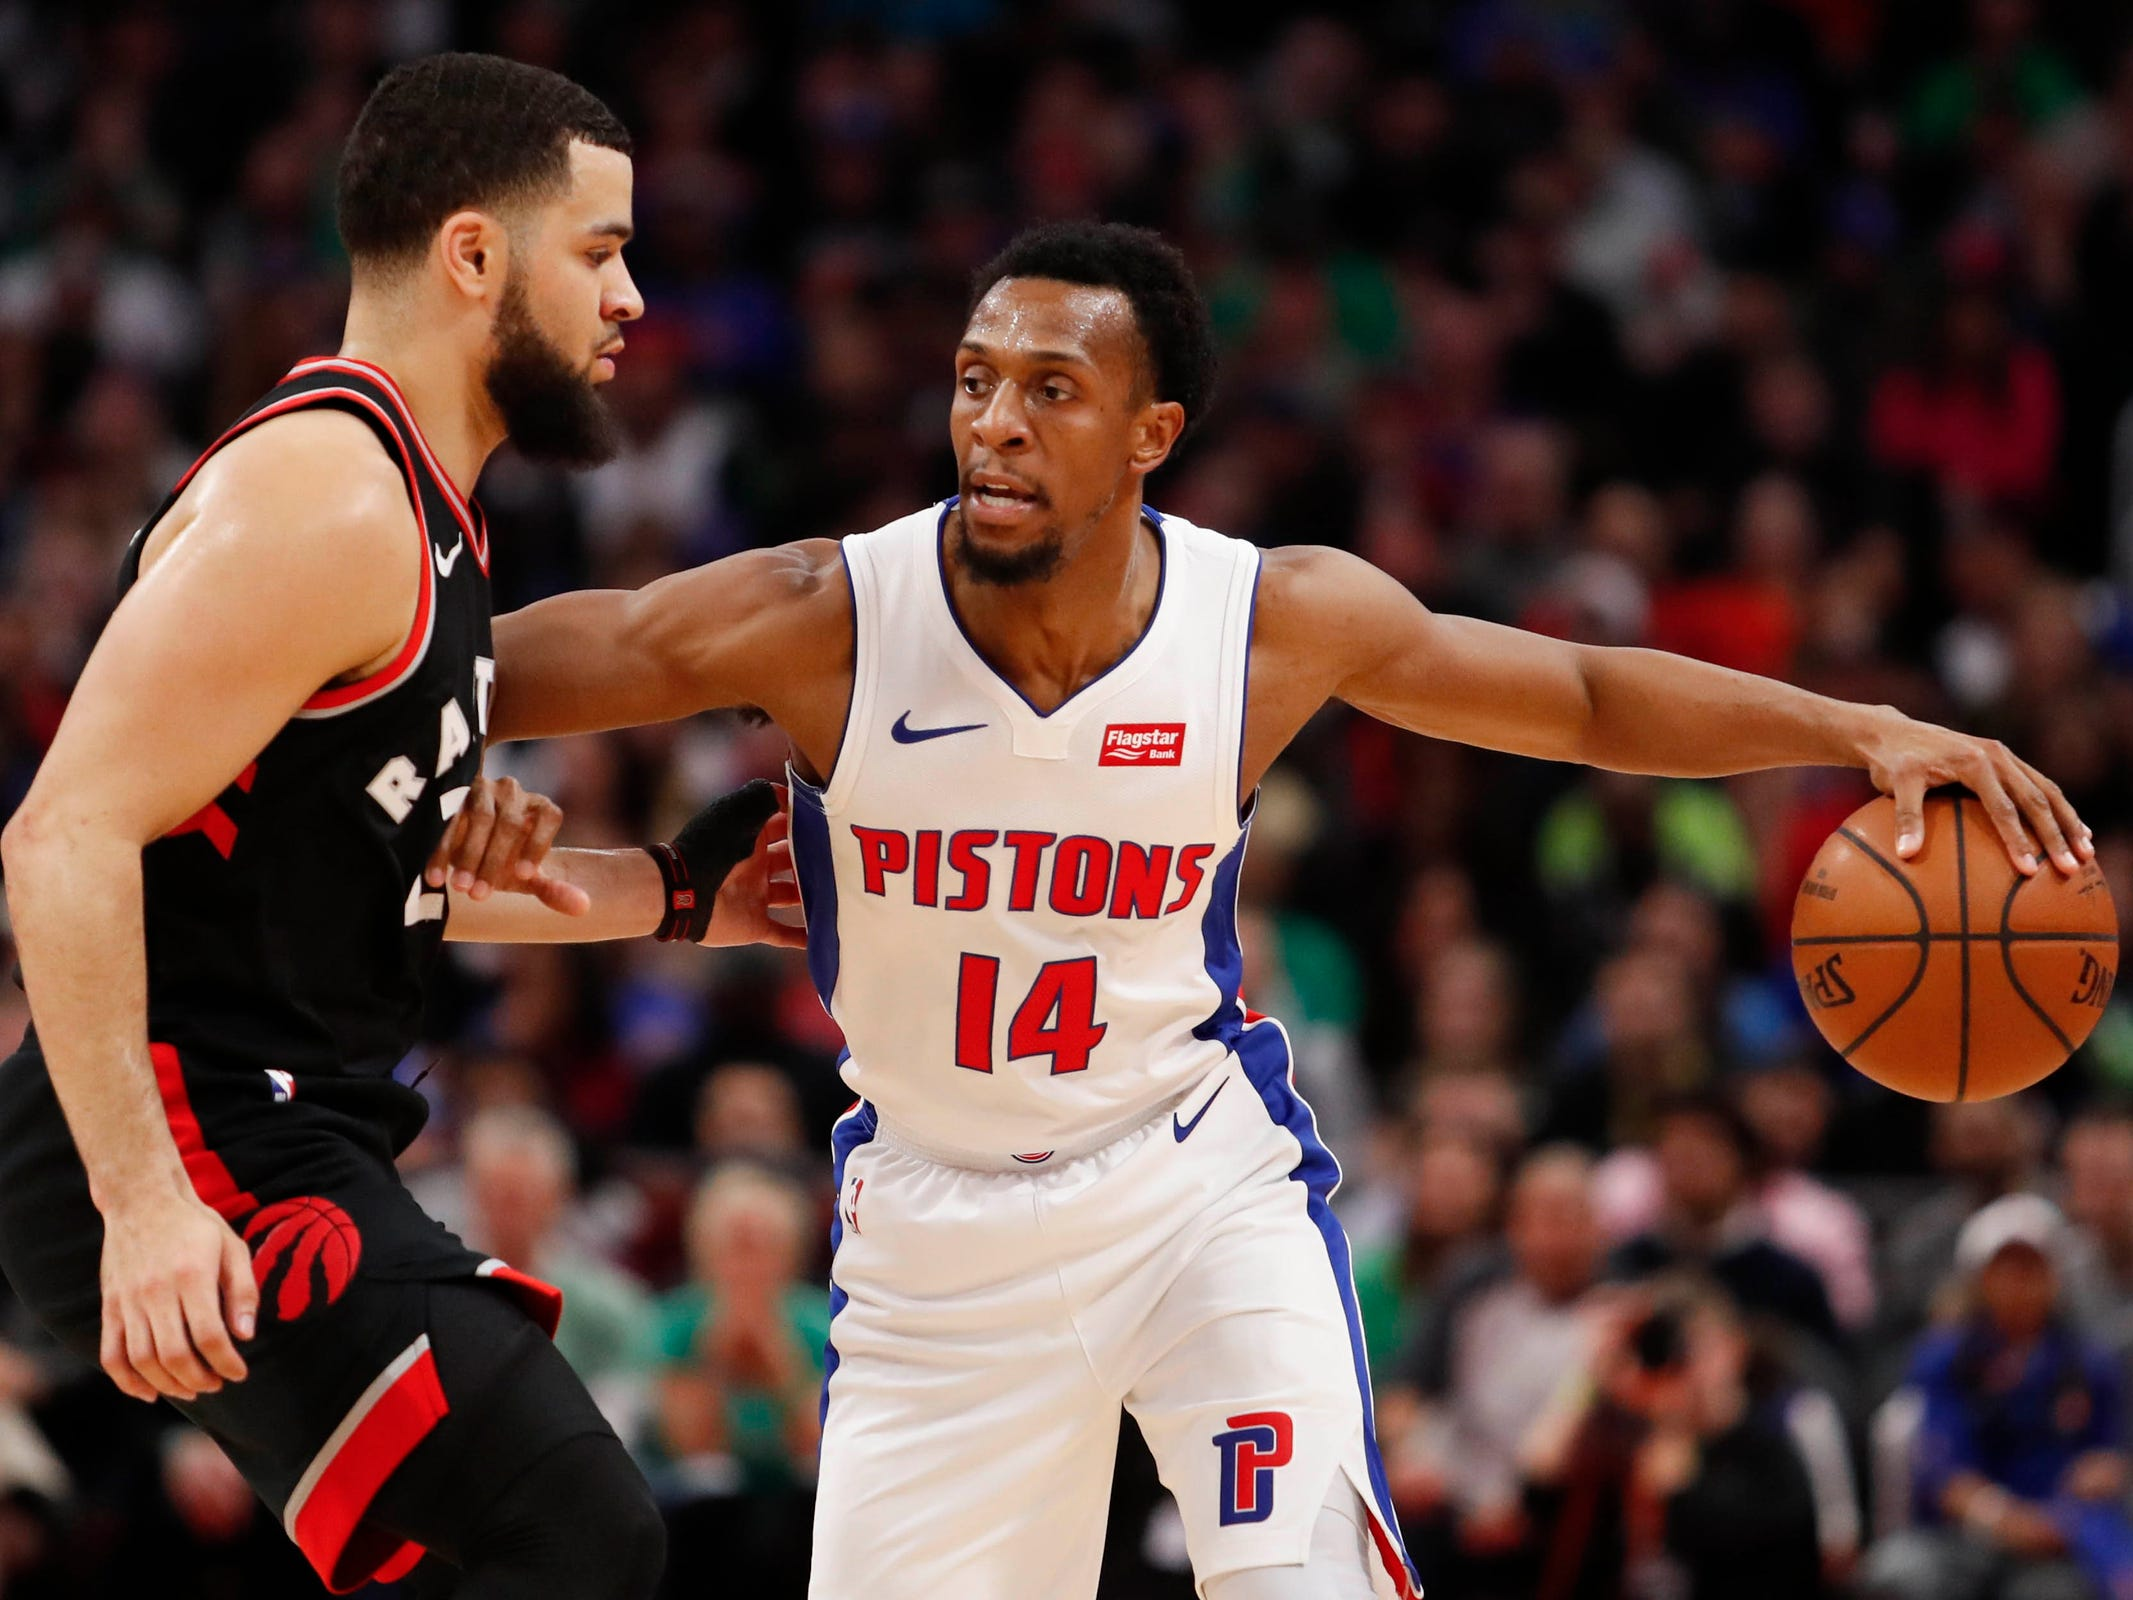 Detroit Pistons guard Ish Smith is defended by Toronto Raptors guard Fred VanVleet during the second quarter at Little Caesars Arena, Sunday, March 17, 2019.